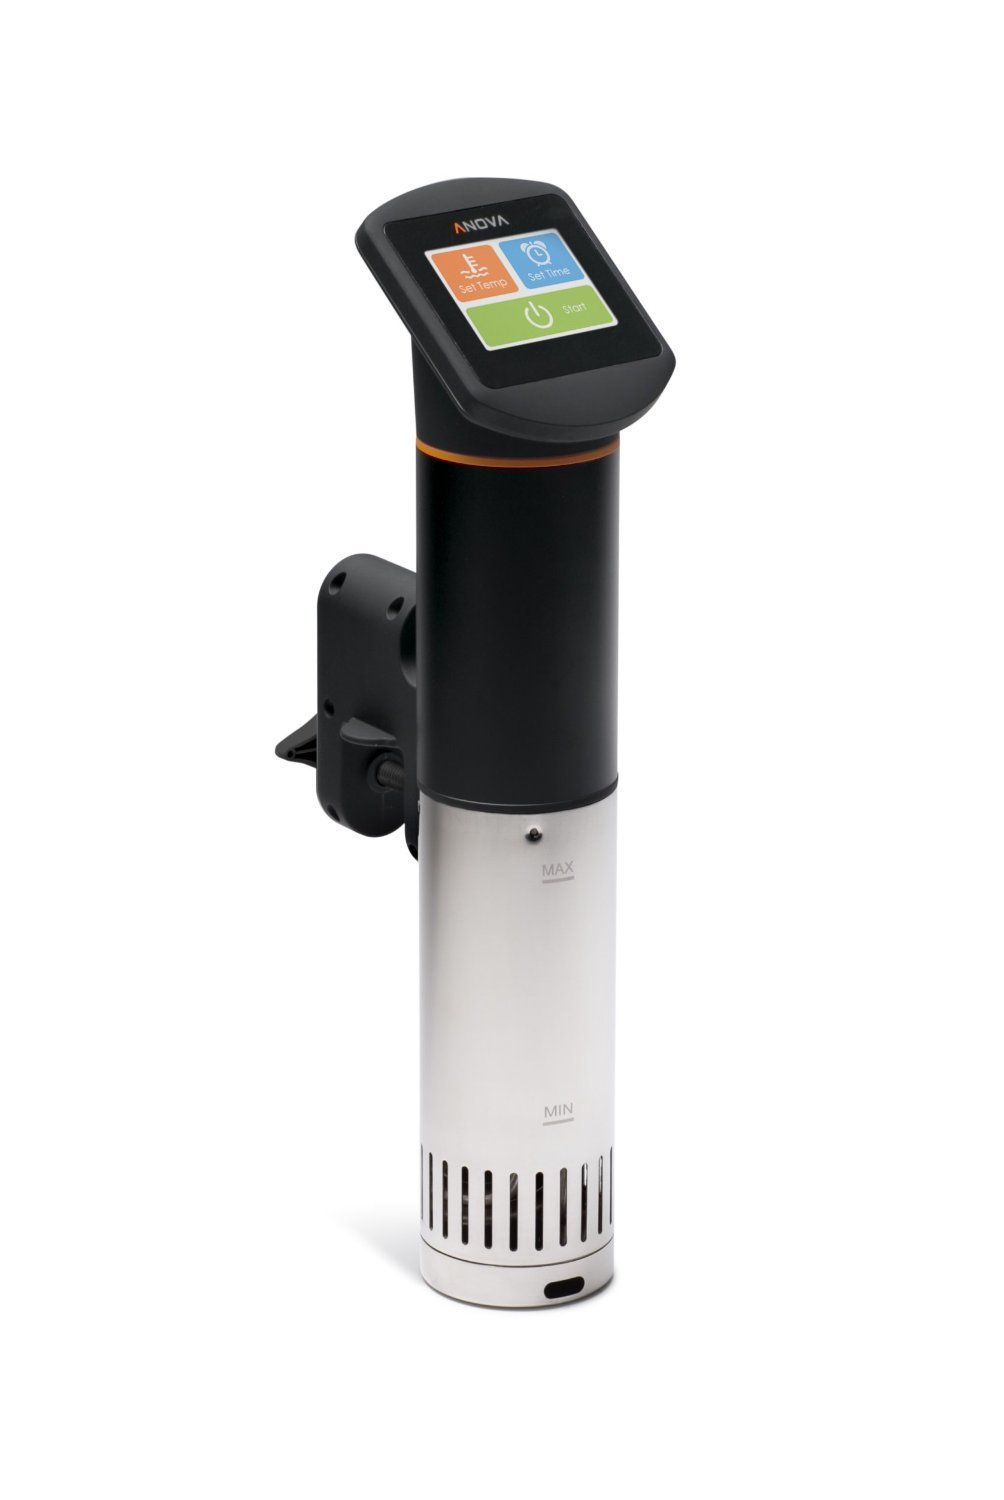 Anova Sous Vide Immersion Circulator - 120V Circulator Cooker